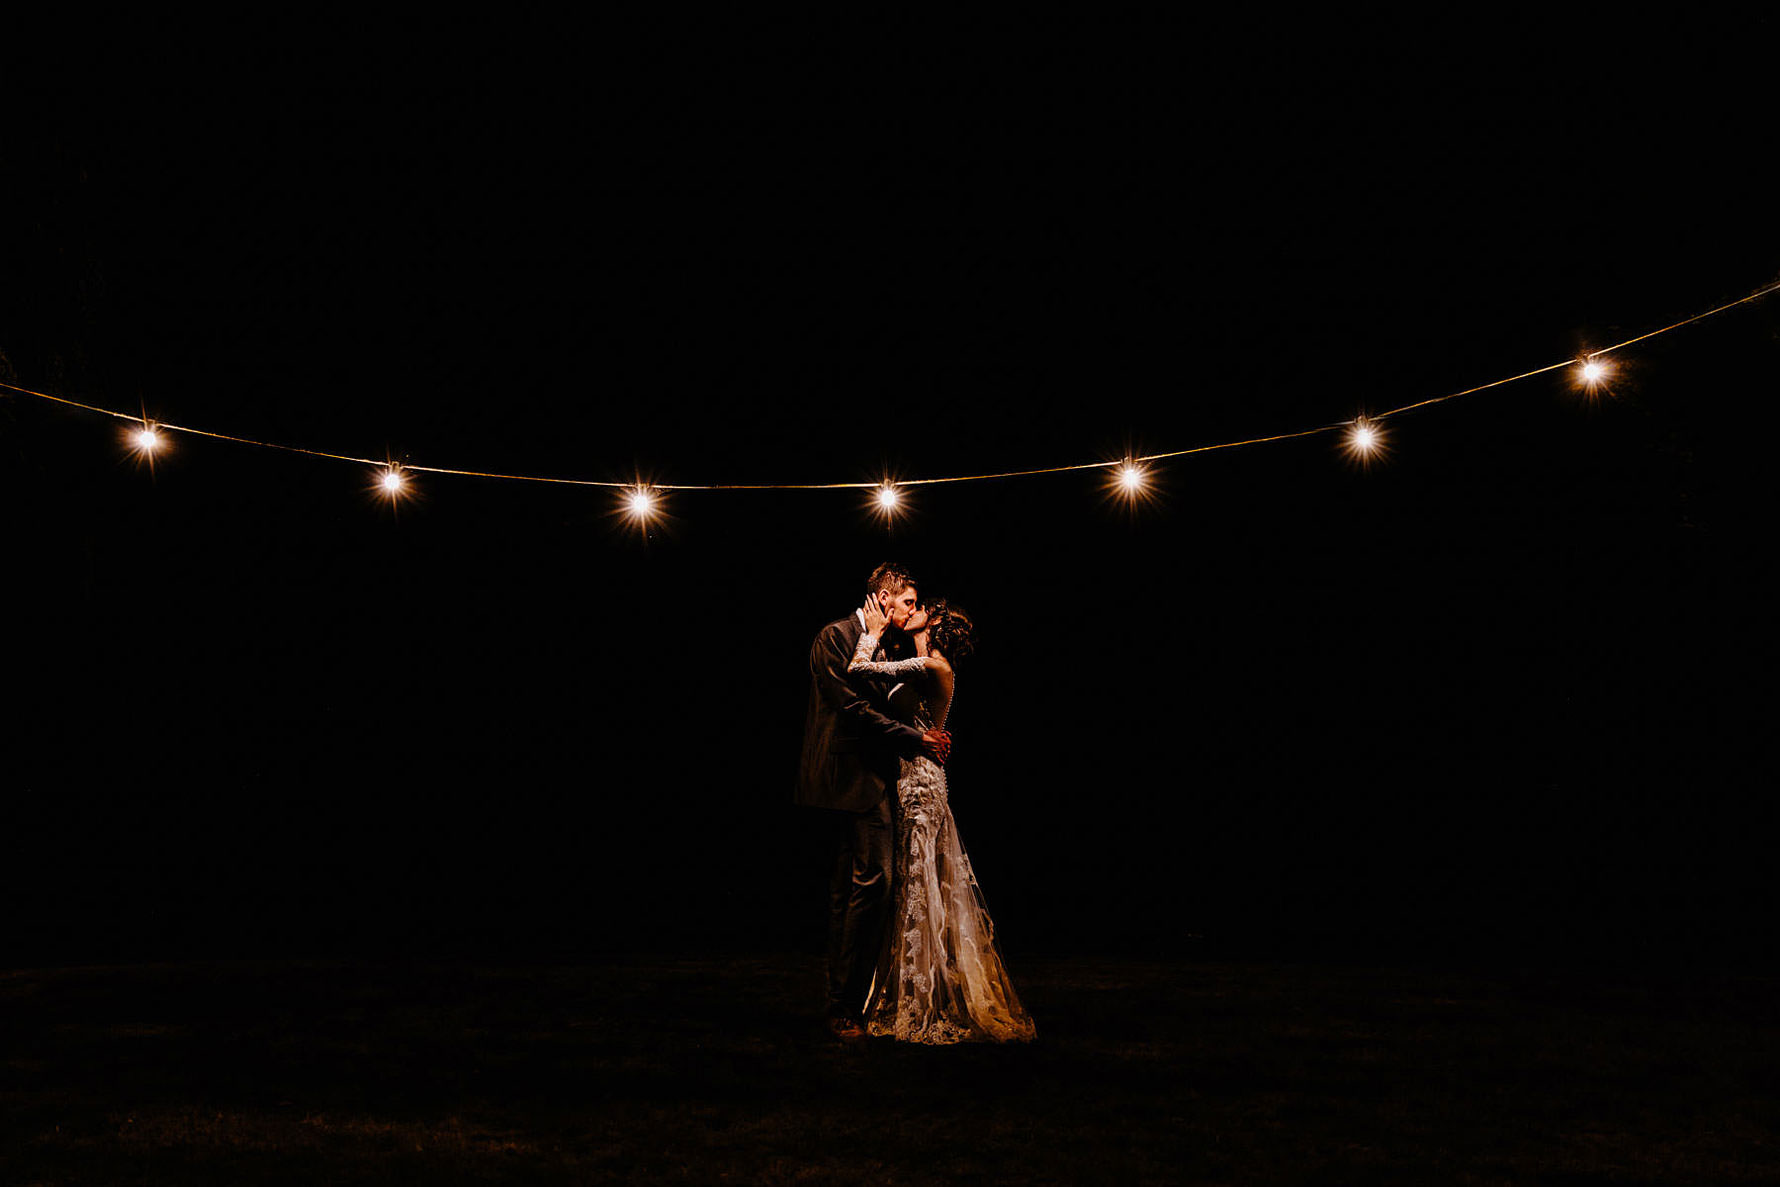 wedding photography by Elliot w patching